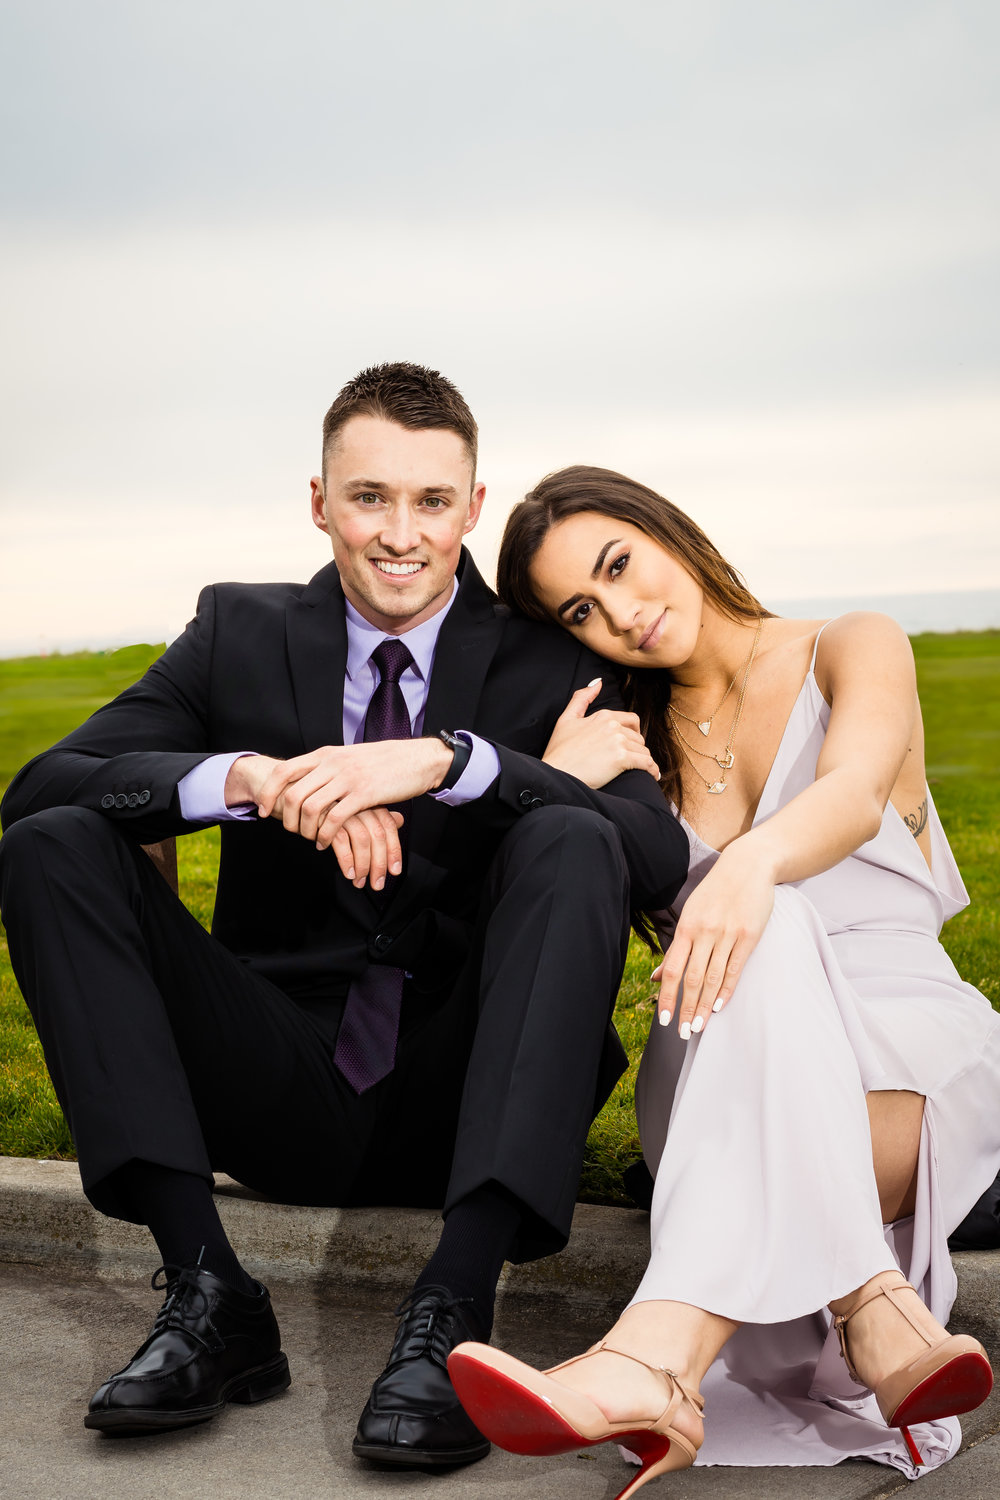 Engagements - Learn more about our Engagement Photography Services and View our Featured Real Engagement Galleries.